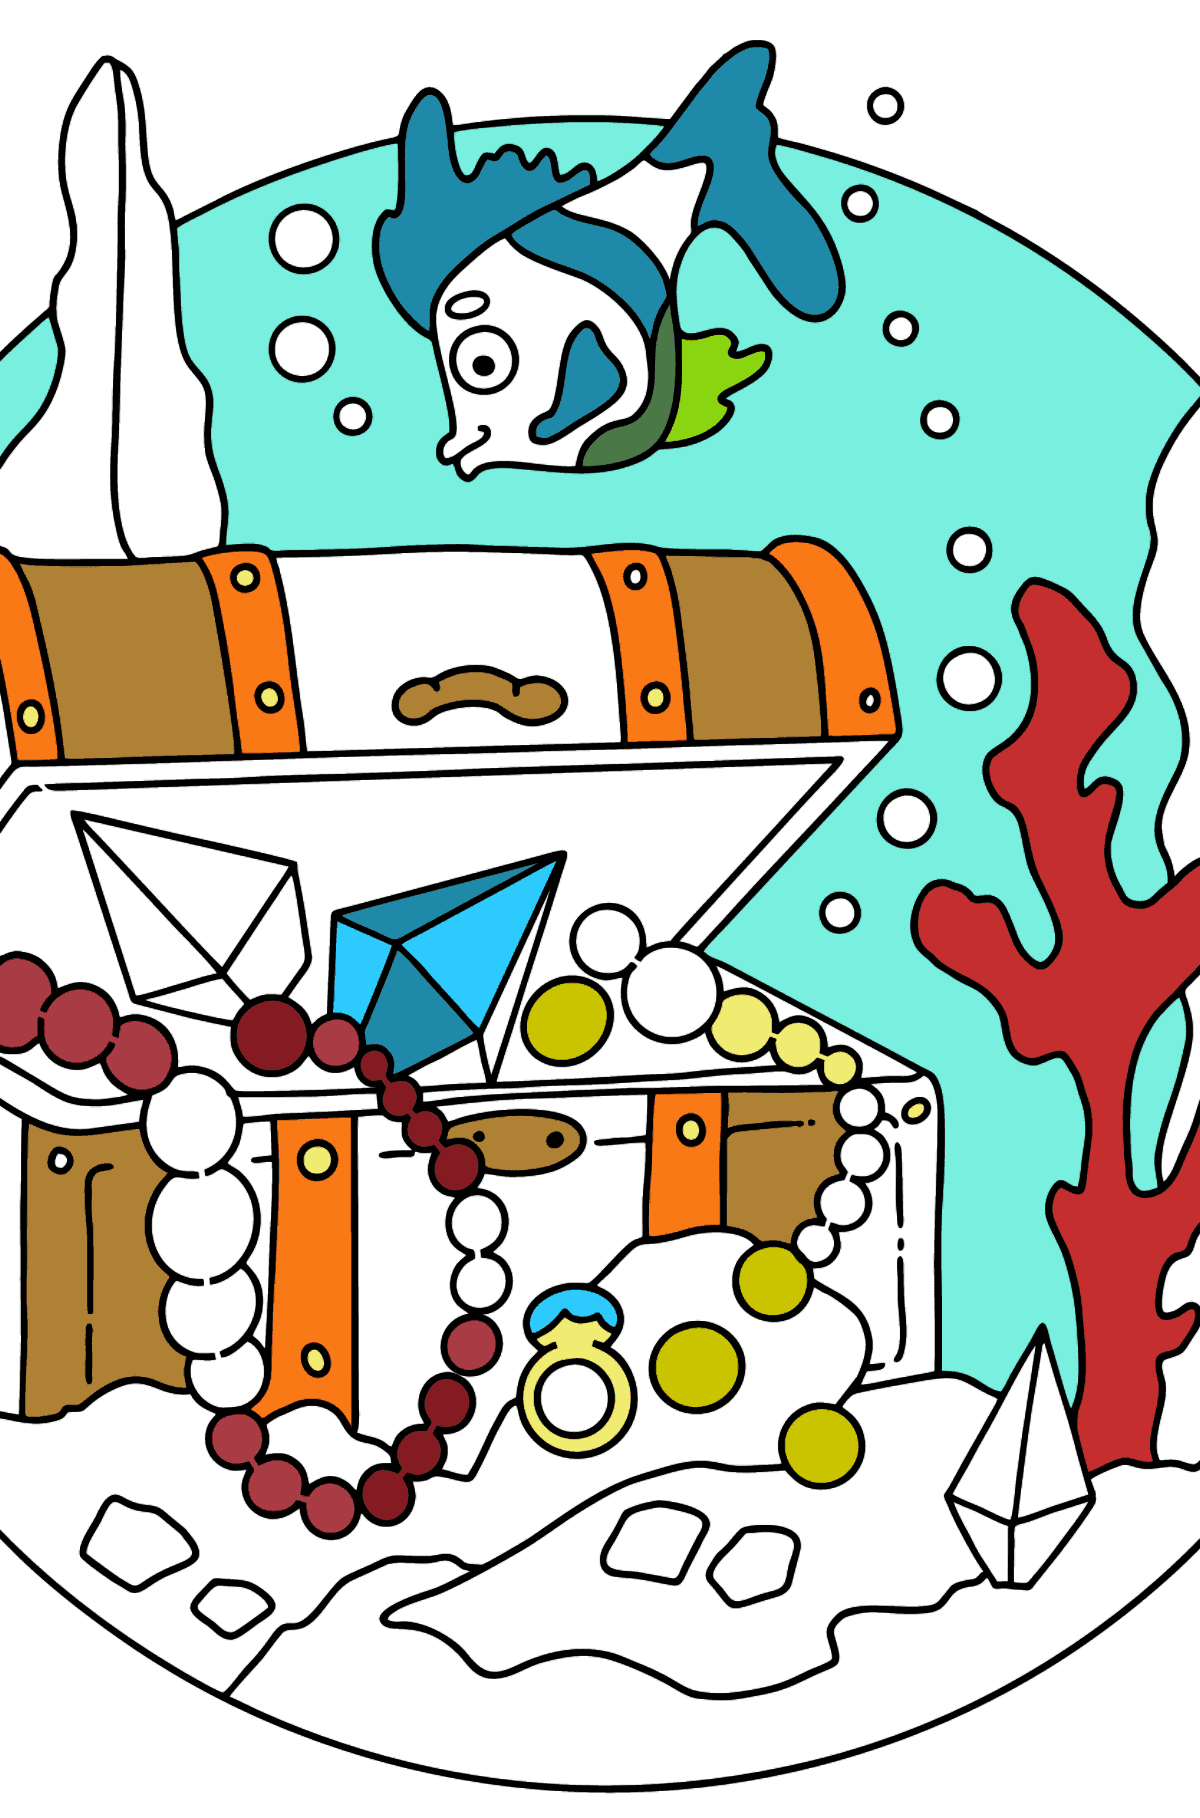 Coloring Page - A Fish is Taking a Peek at a Treasure - Coloring Pages for Kids